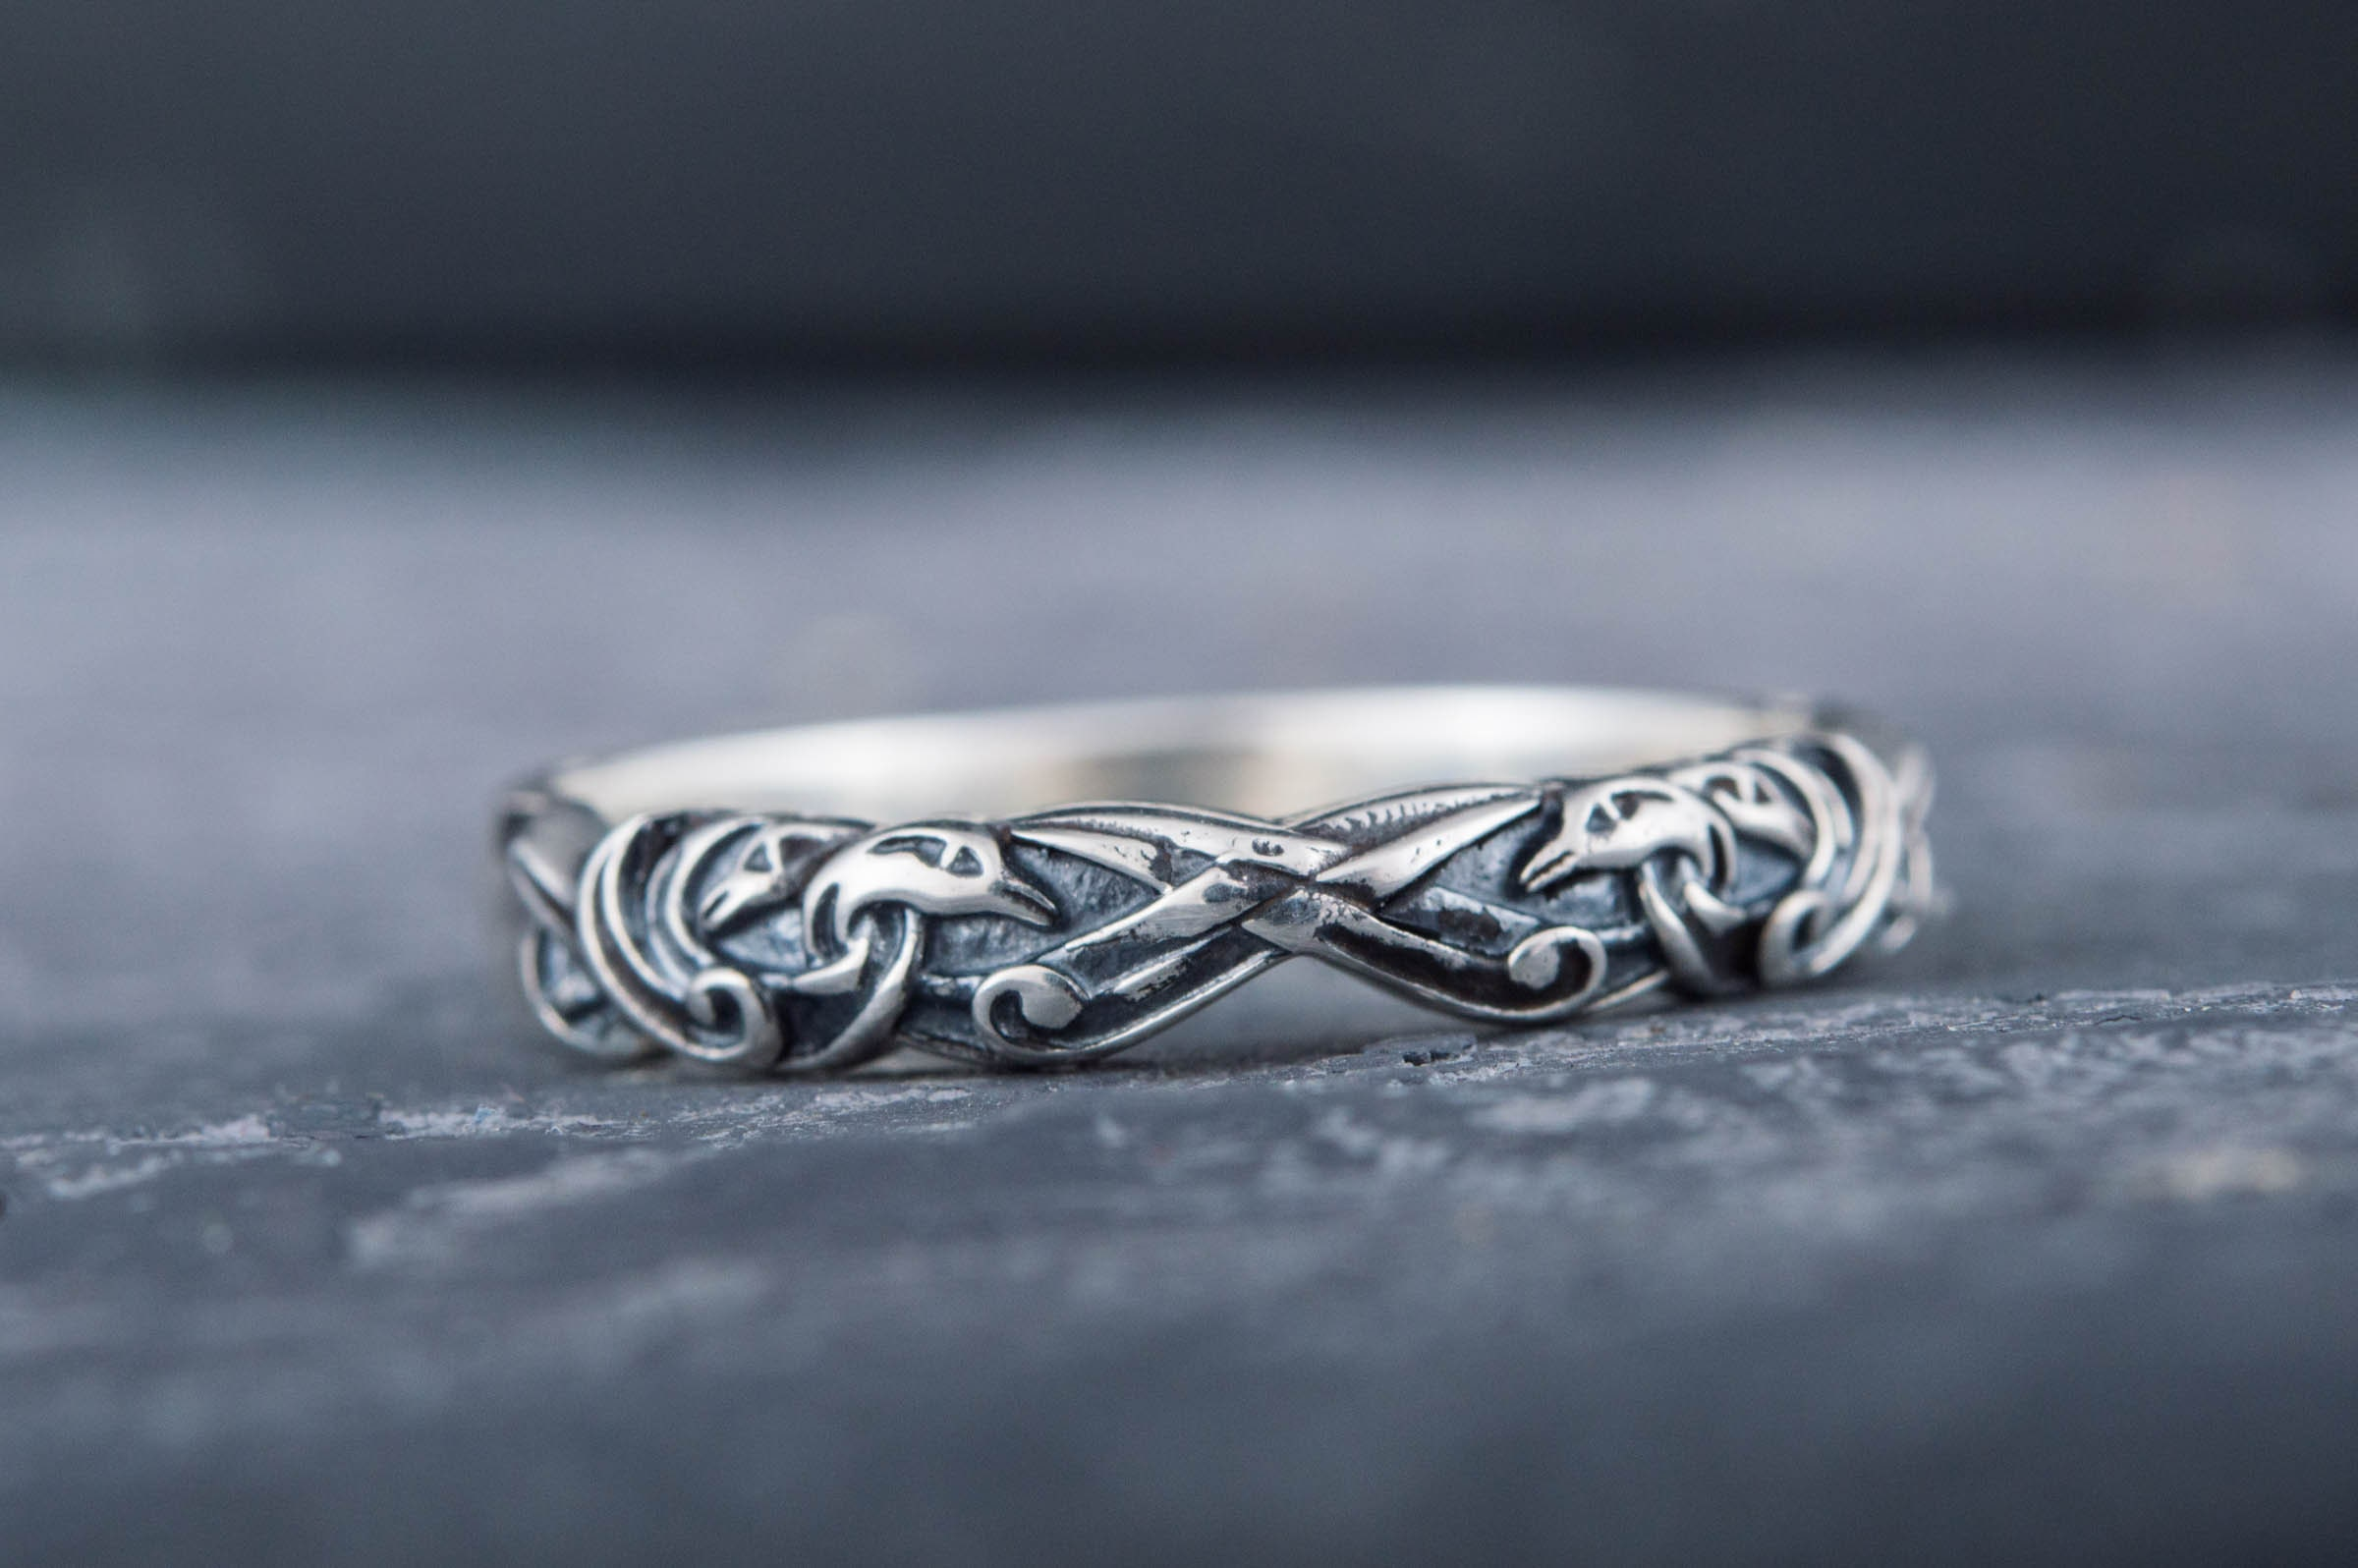 925 Silver Elegant Viking Floral Ornament Tiny Ring, Norse Animal Wedding Scandinavian Band Jewelry, Nordic-style gift for Viking Girlfriend, used for sale